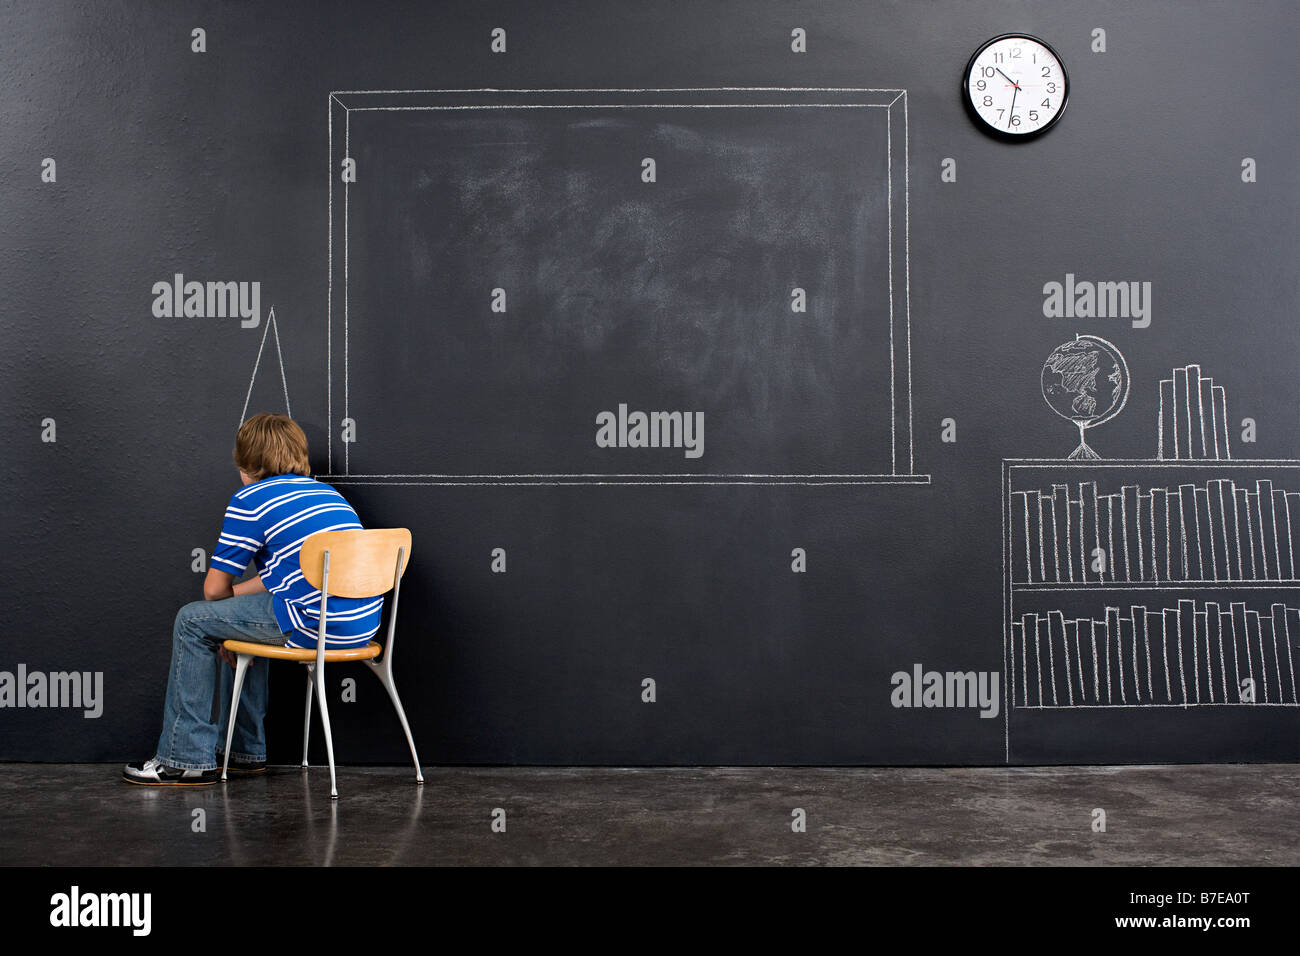 A boy sat in a corner with a chalk dunce cap - Stock Image